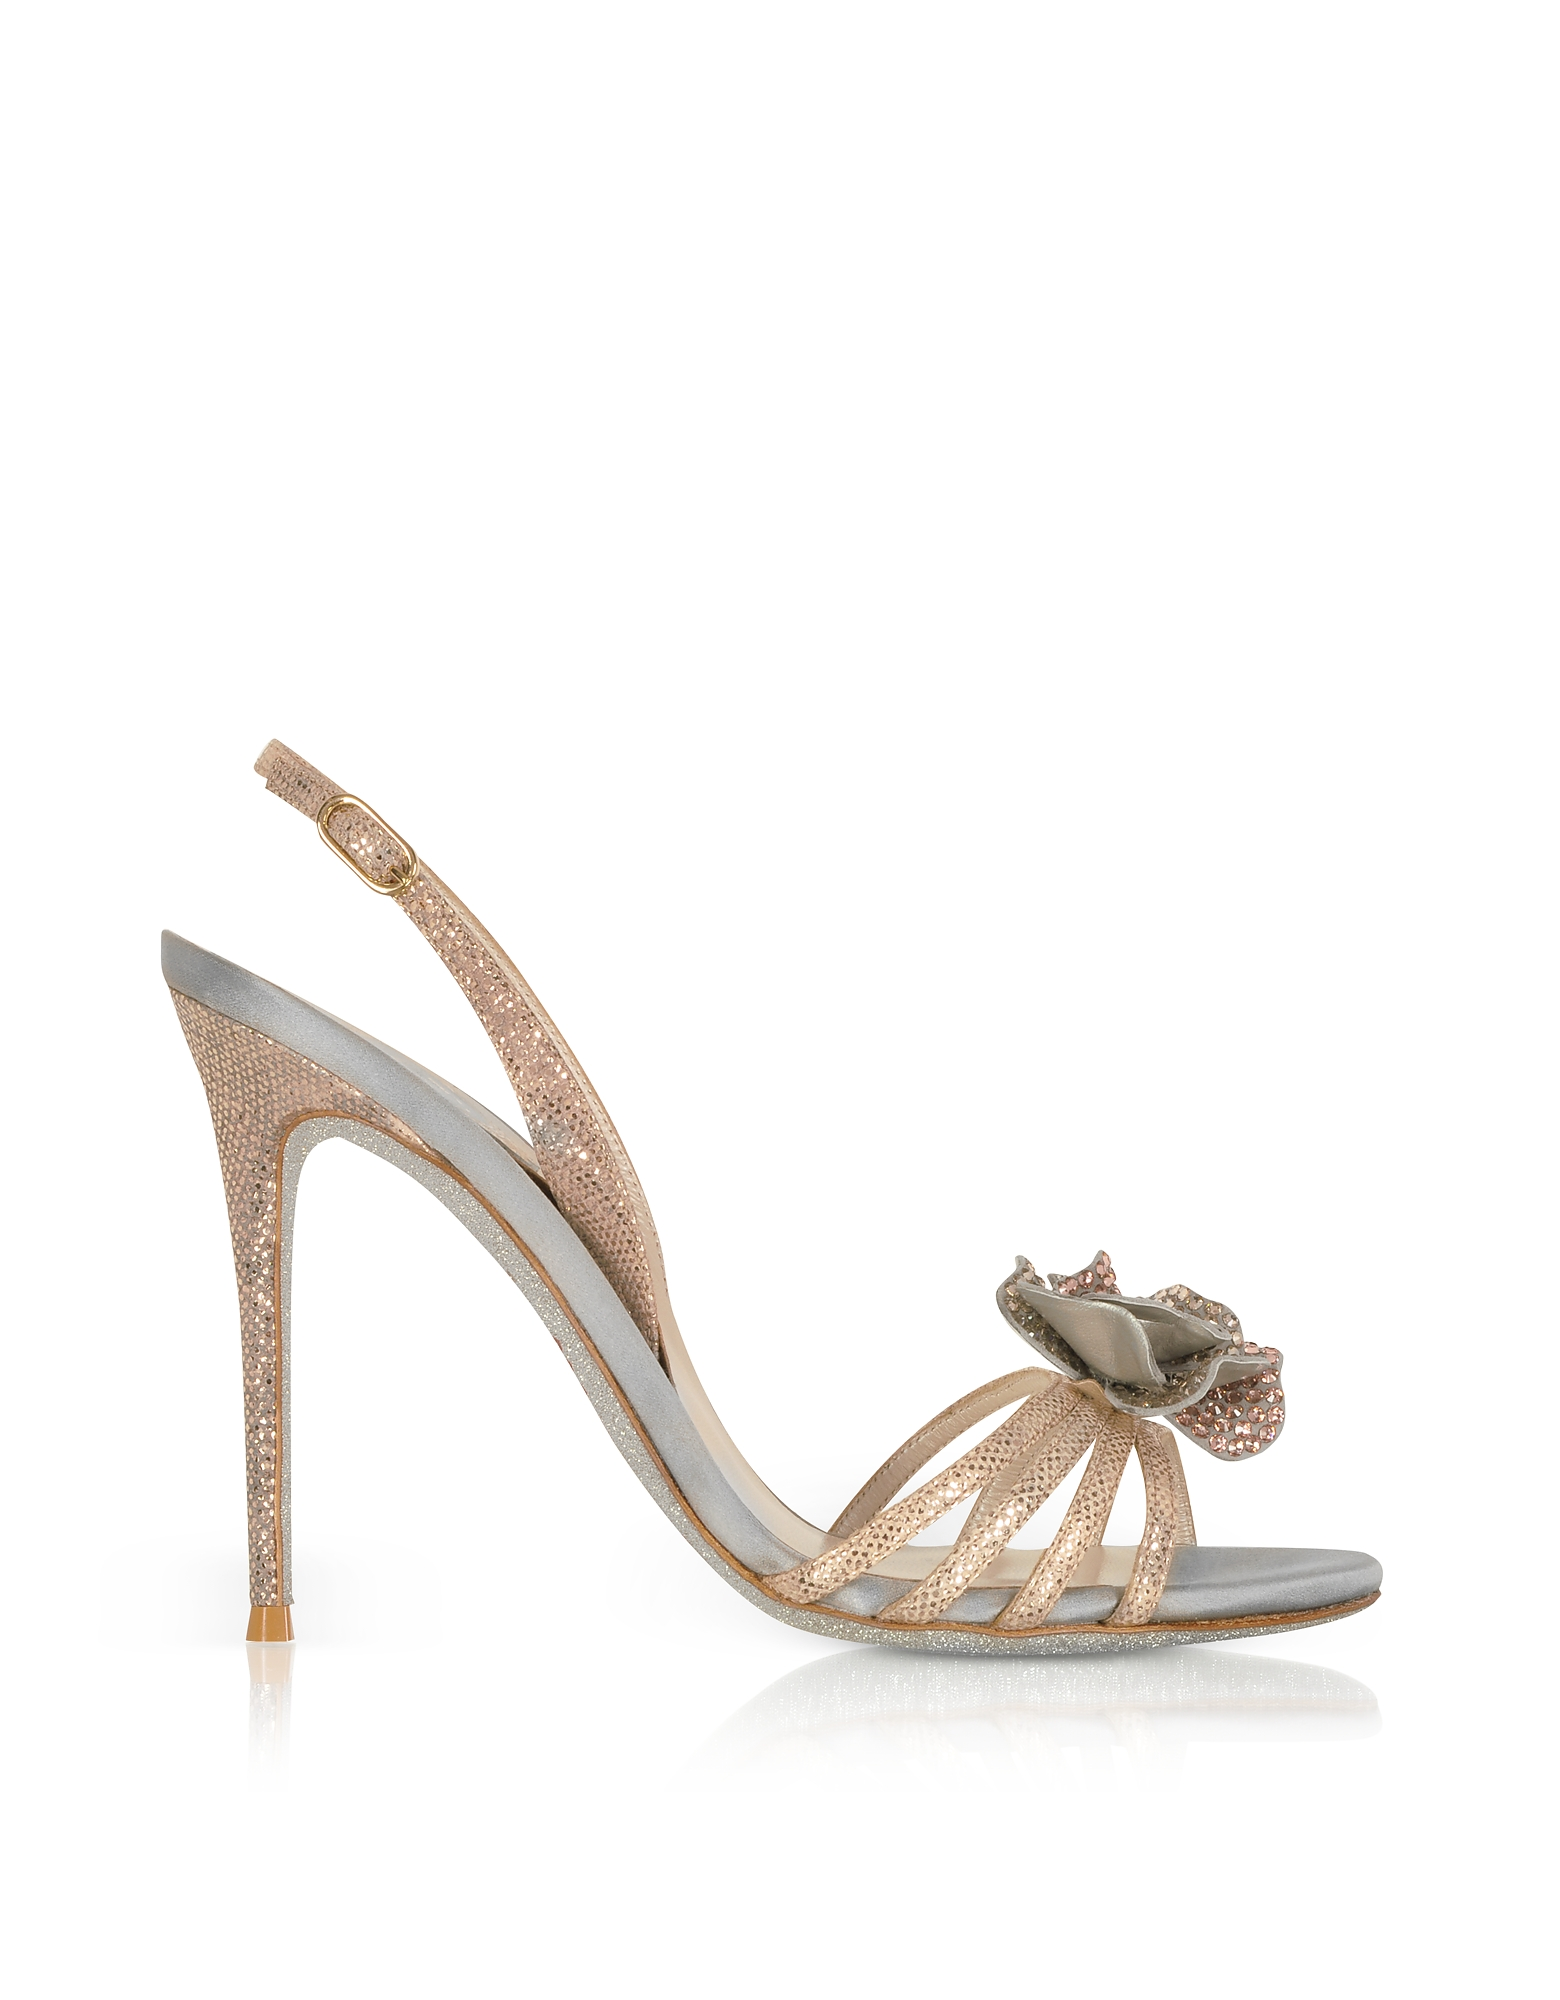 Rene Caovilla Shoes, Rose Gold Karung Leather and Silk High Heel Sandals